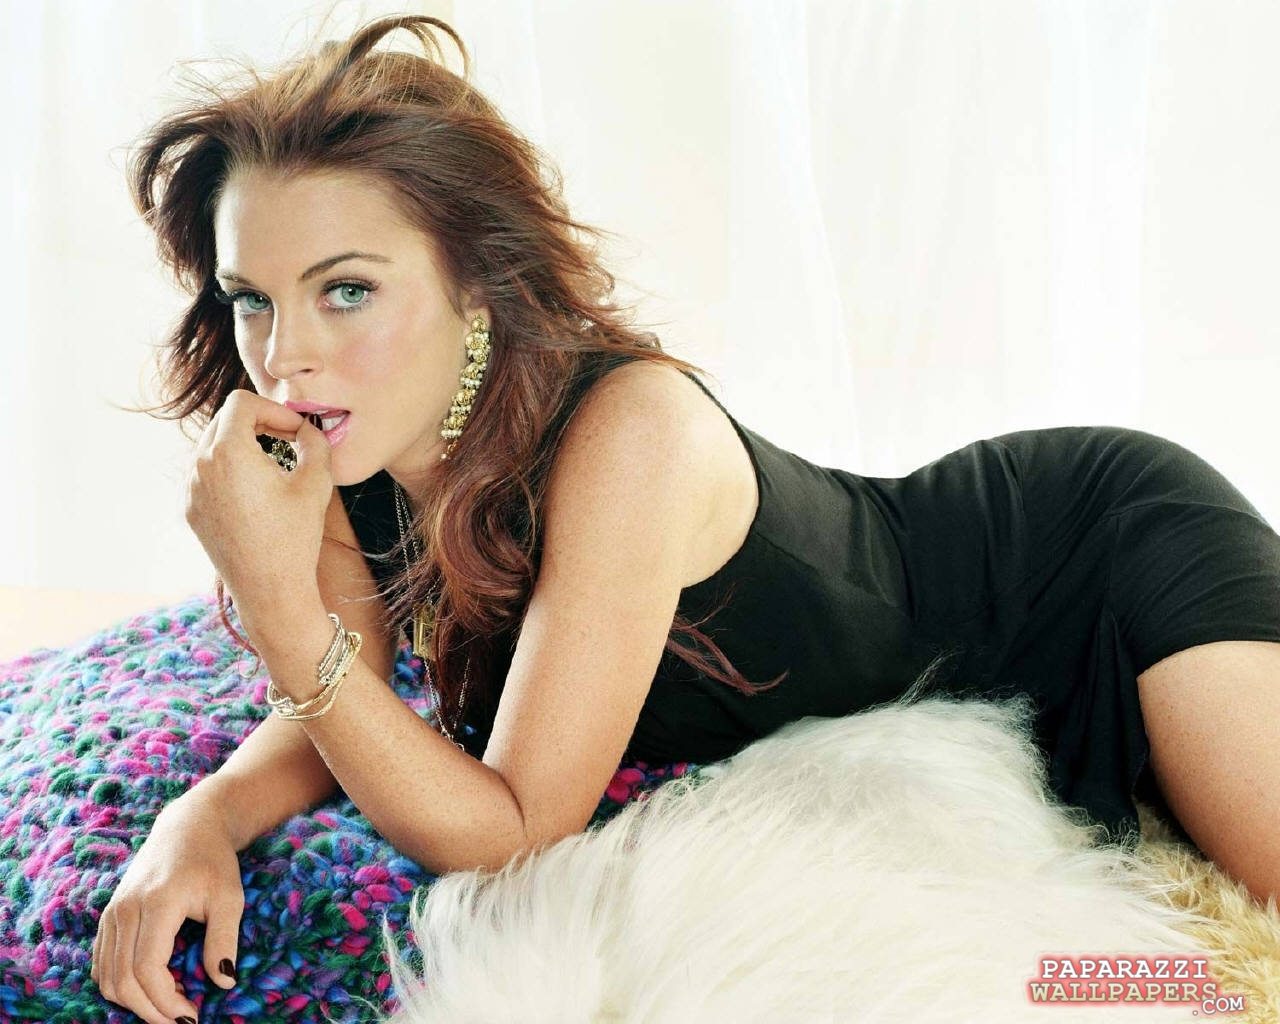 lindsay lohan wallpapers 004